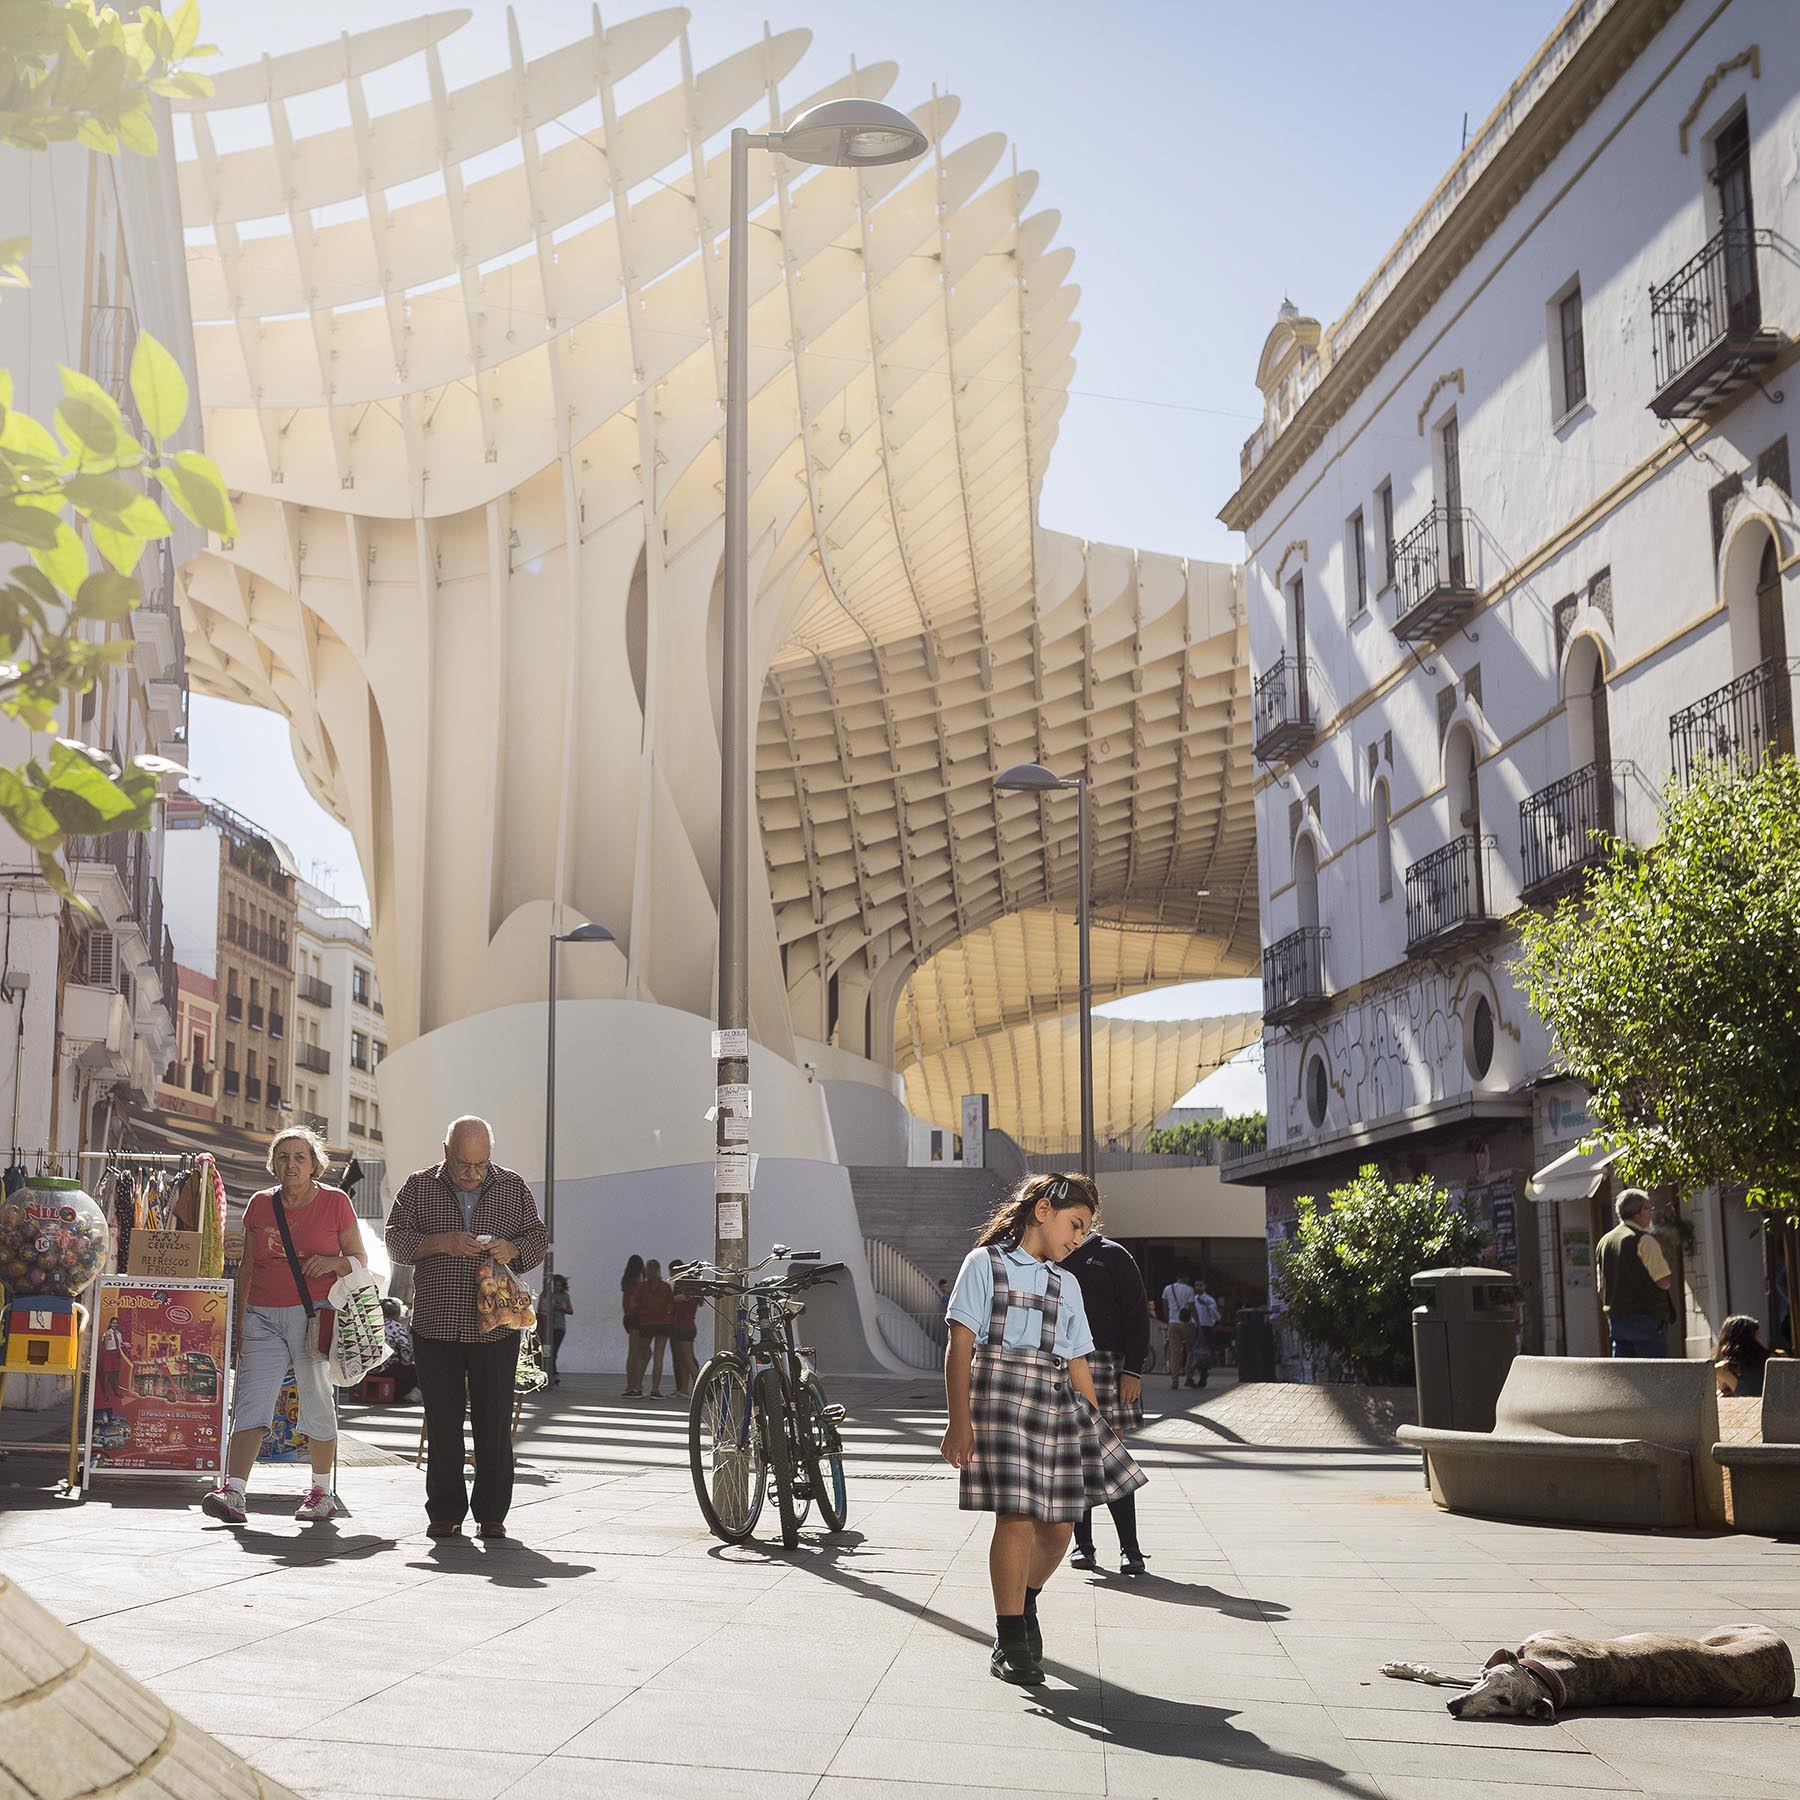 A modern architectural structure rises behind traditional buildings and pedestrians in a public plaza.